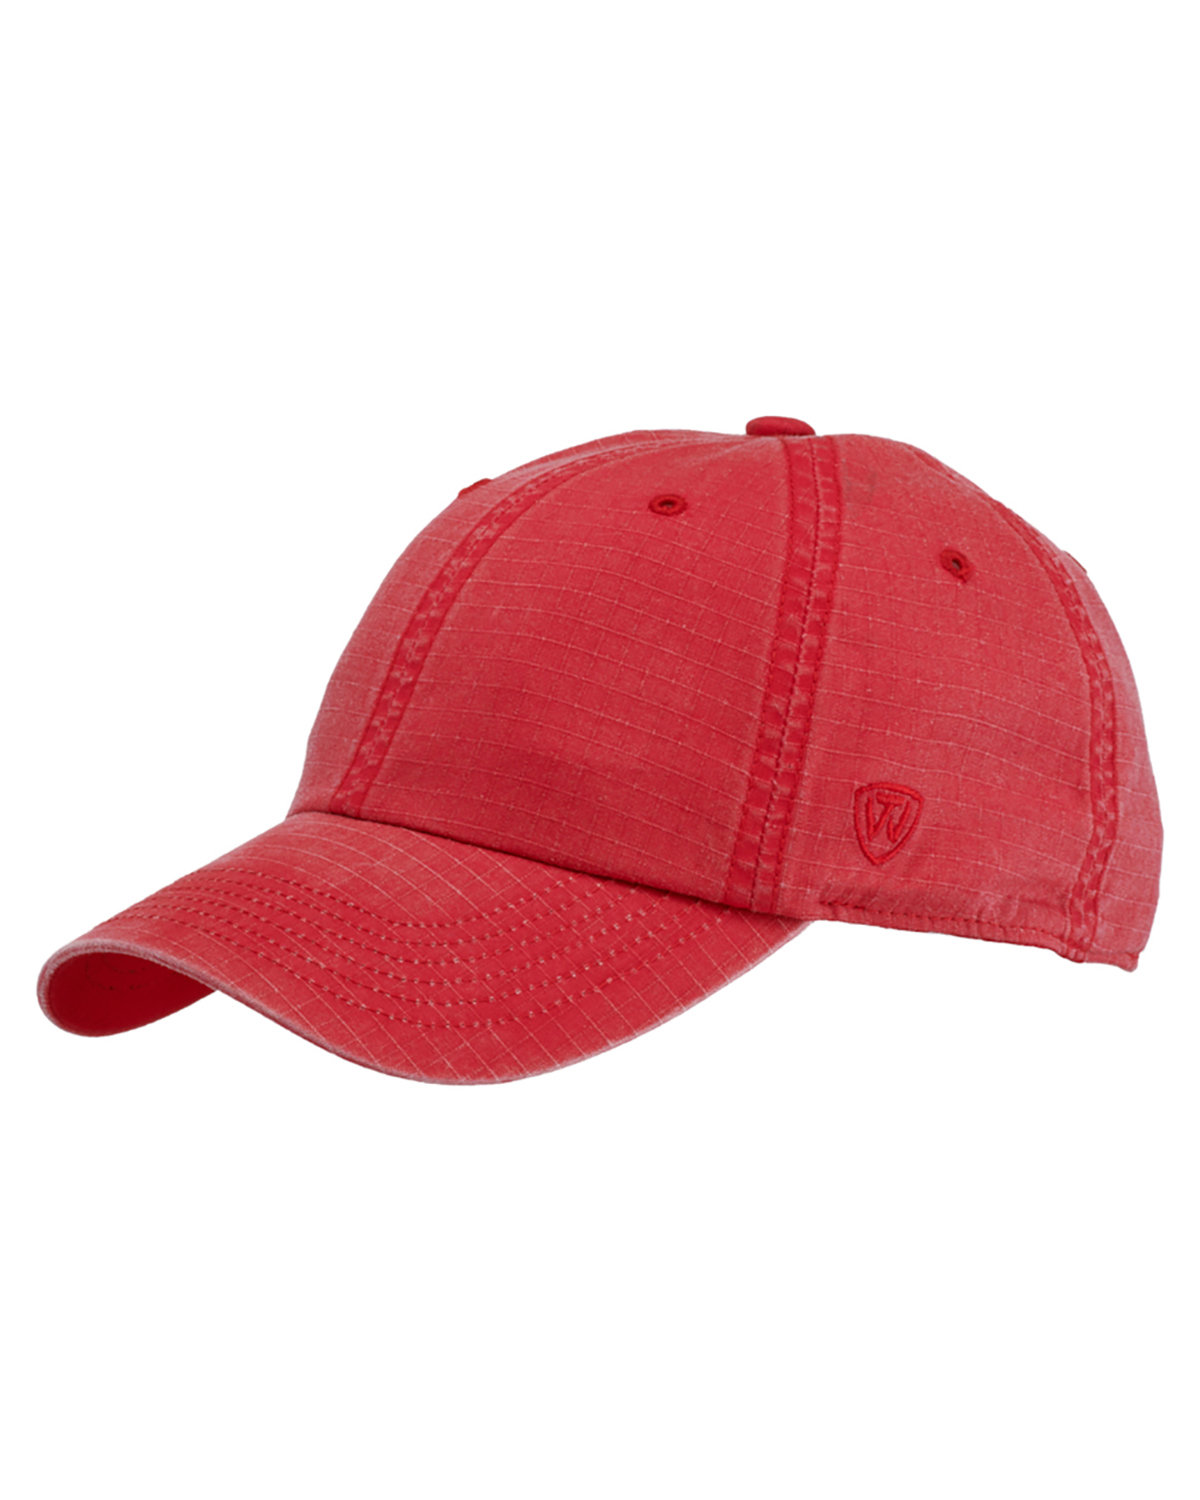 Top Of The World Ripper Washed Cotton Ripstop Hat RED